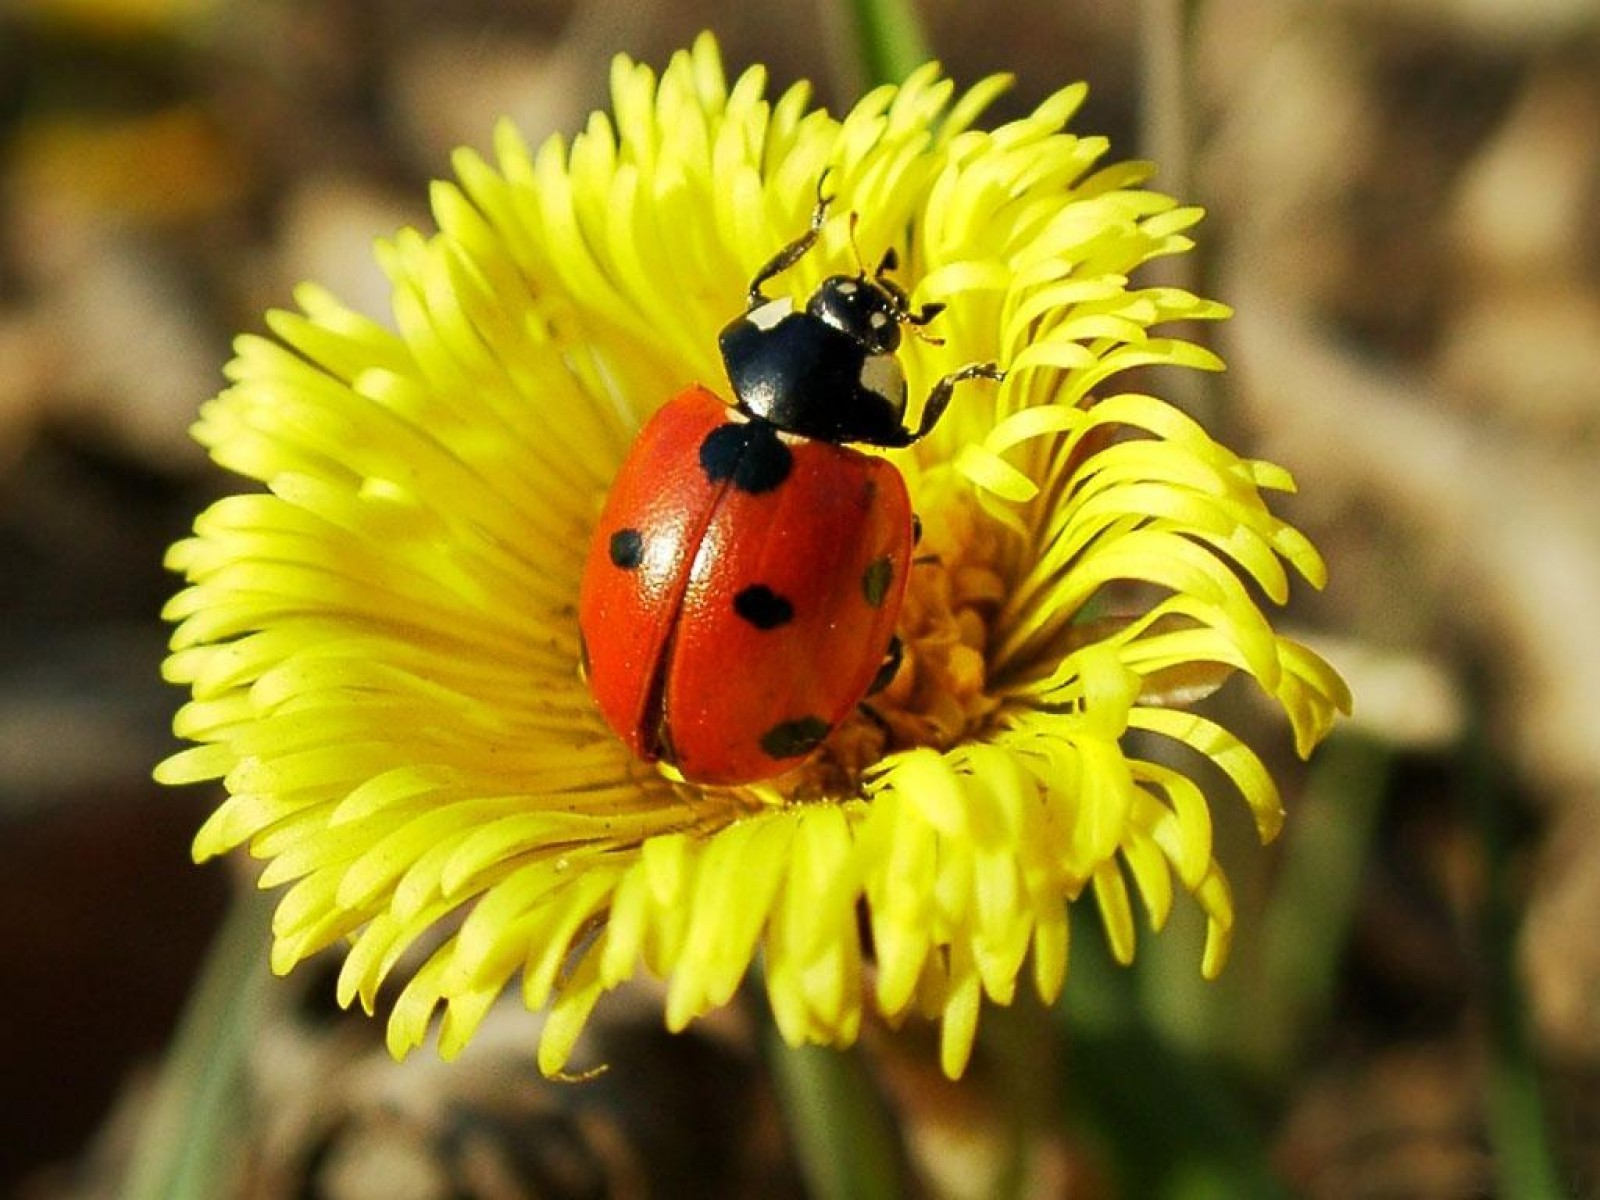 18224 download wallpaper Insects, Ladybugs screensavers and pictures for free